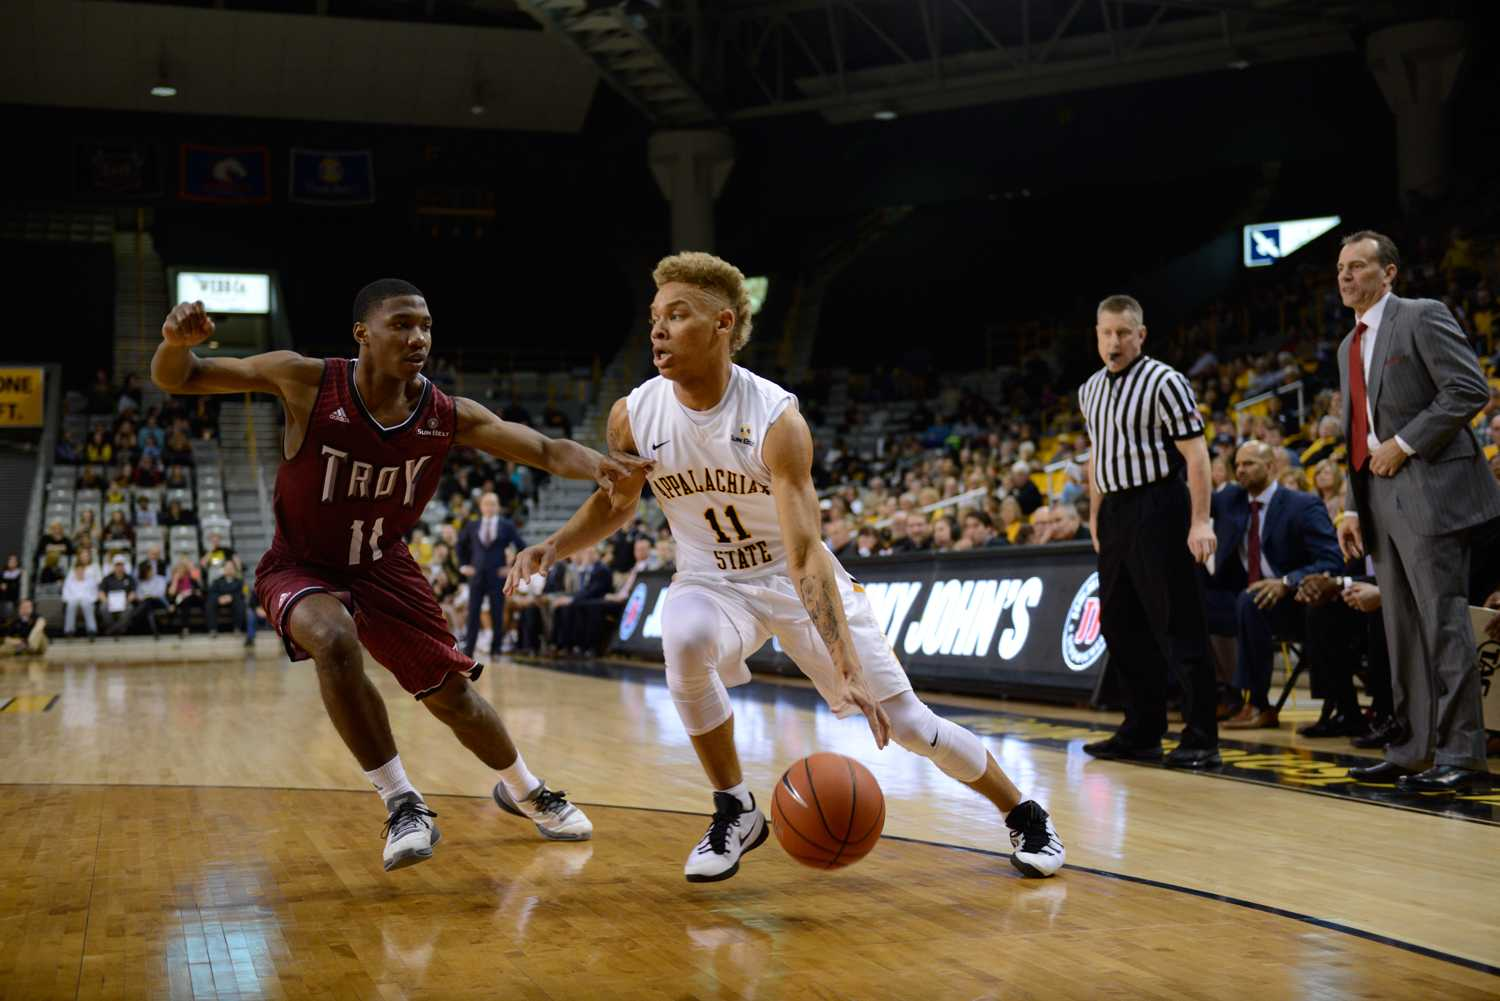 Biggest crowd of the season helps propel App to victory